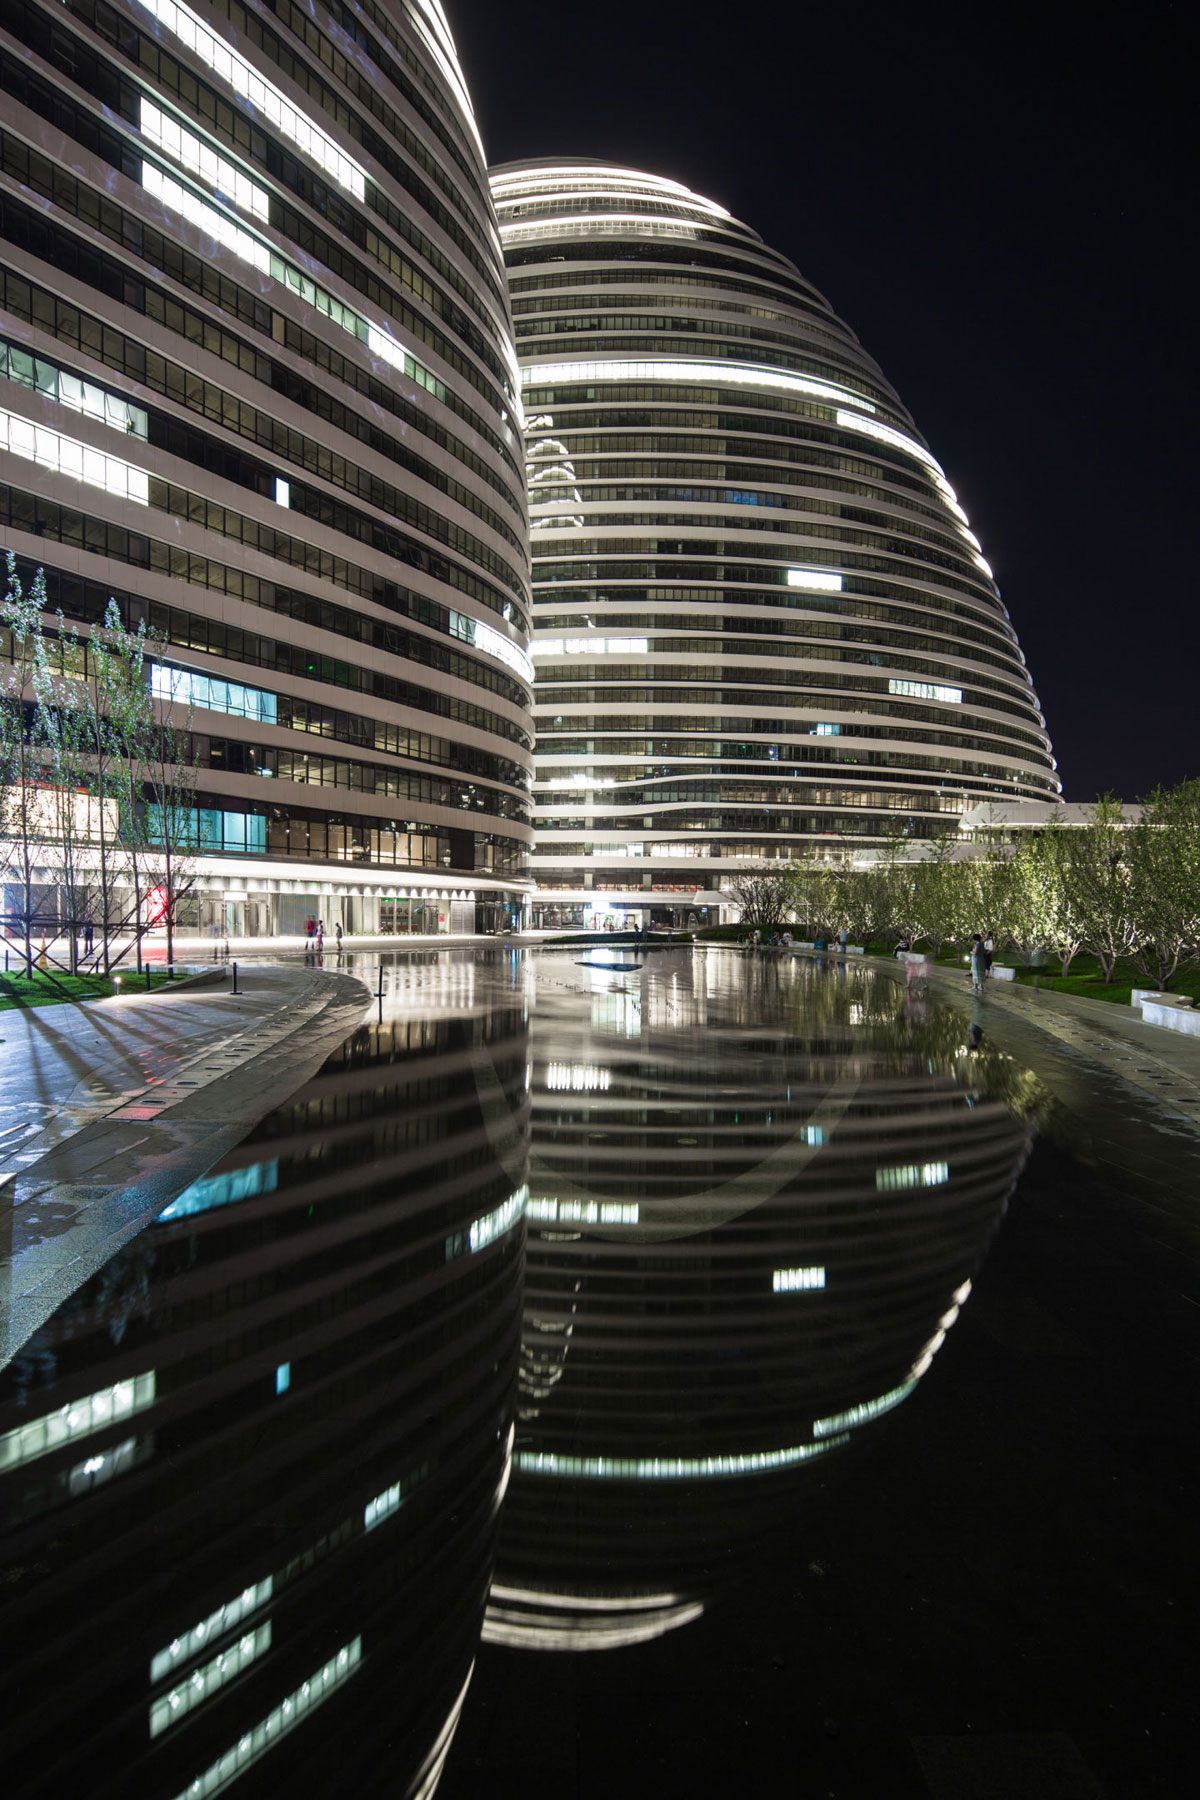 Wangjing SOHO / Zaha Hadid Architects